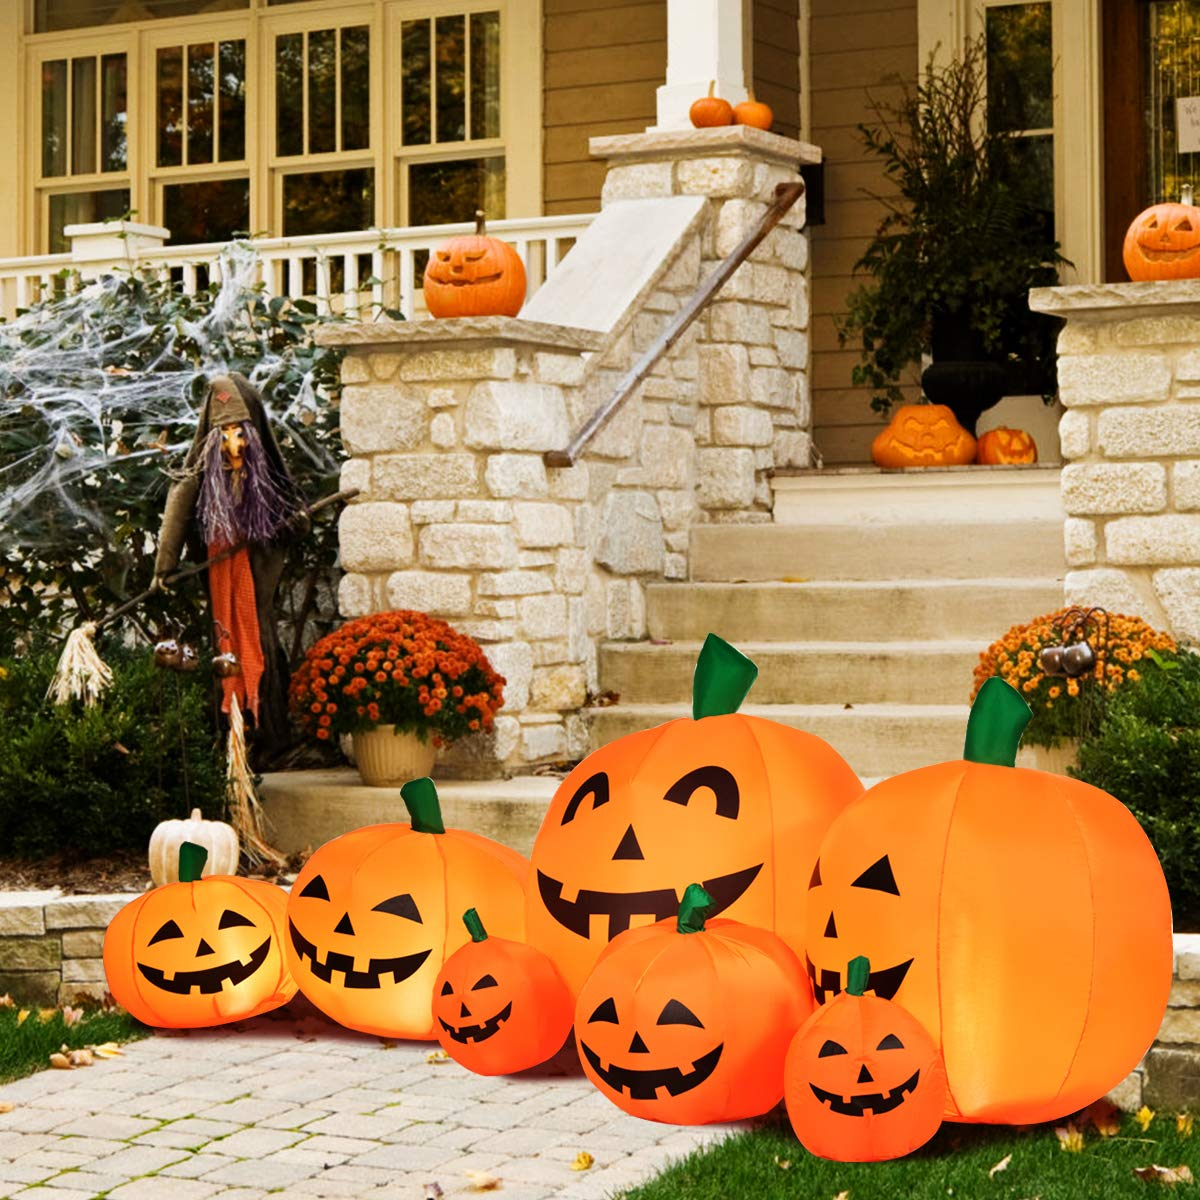 Large Inflatable Flashing Ligh Up Pumpkin Patch Halloween yard /& Lawn decoration